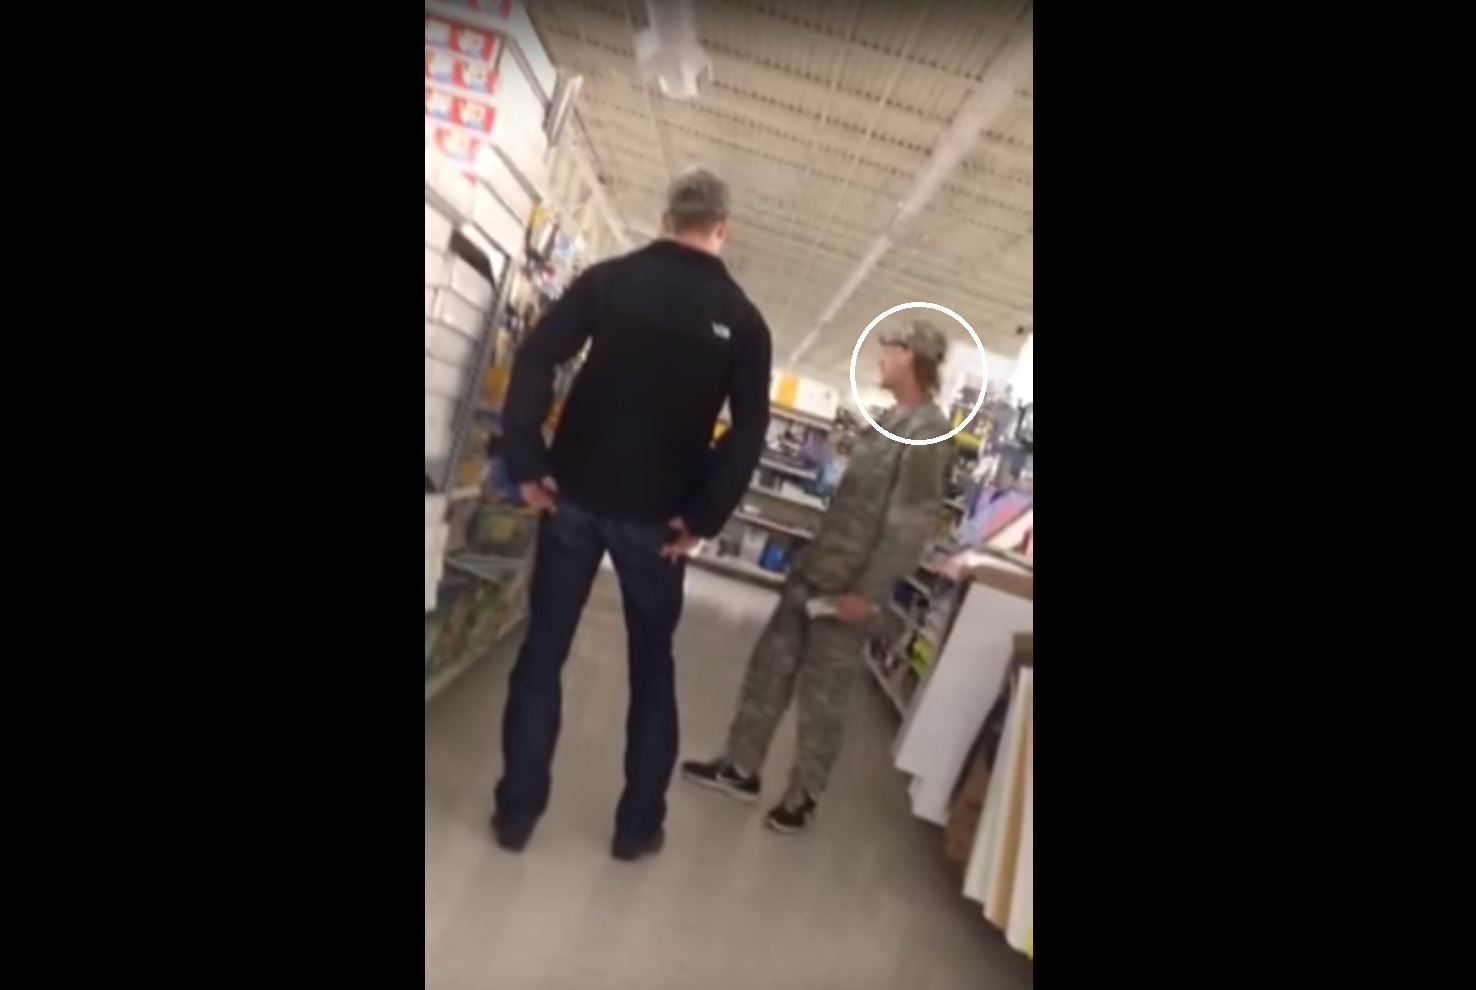 Fake Army Seal With Mullet Haircut Confronted At Walmart Rallypoint